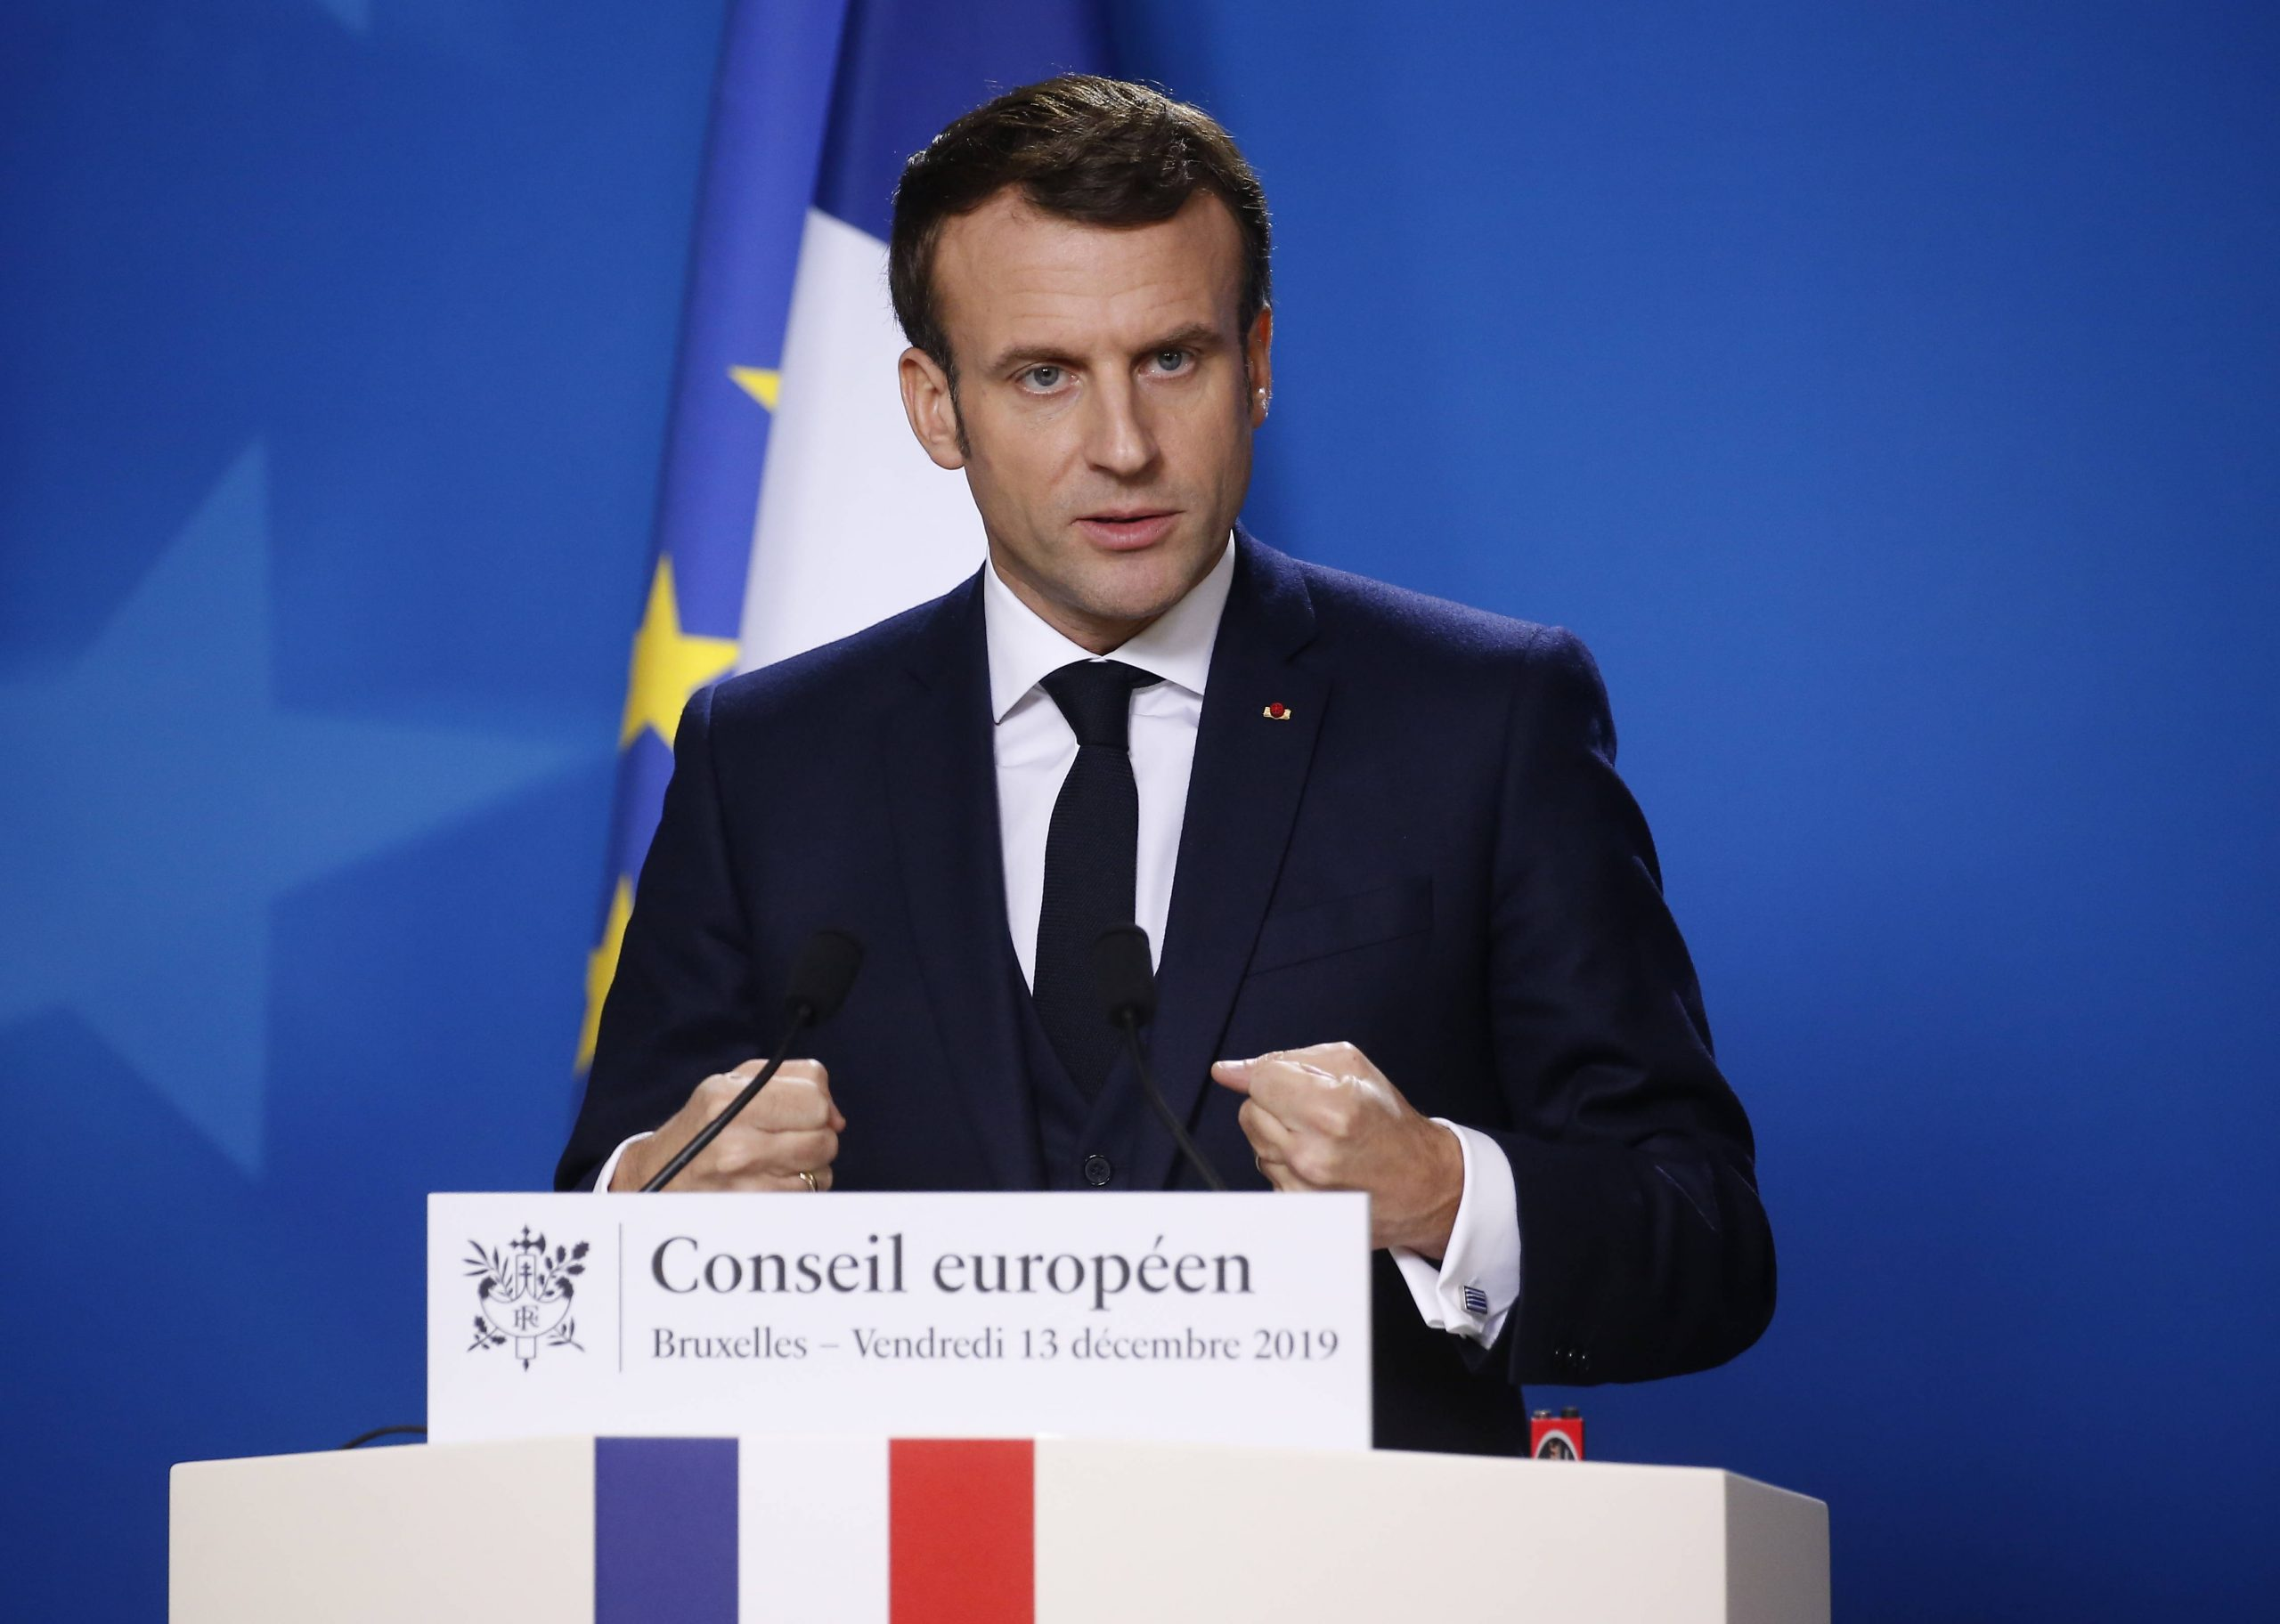 The French Vision of Europe's Future